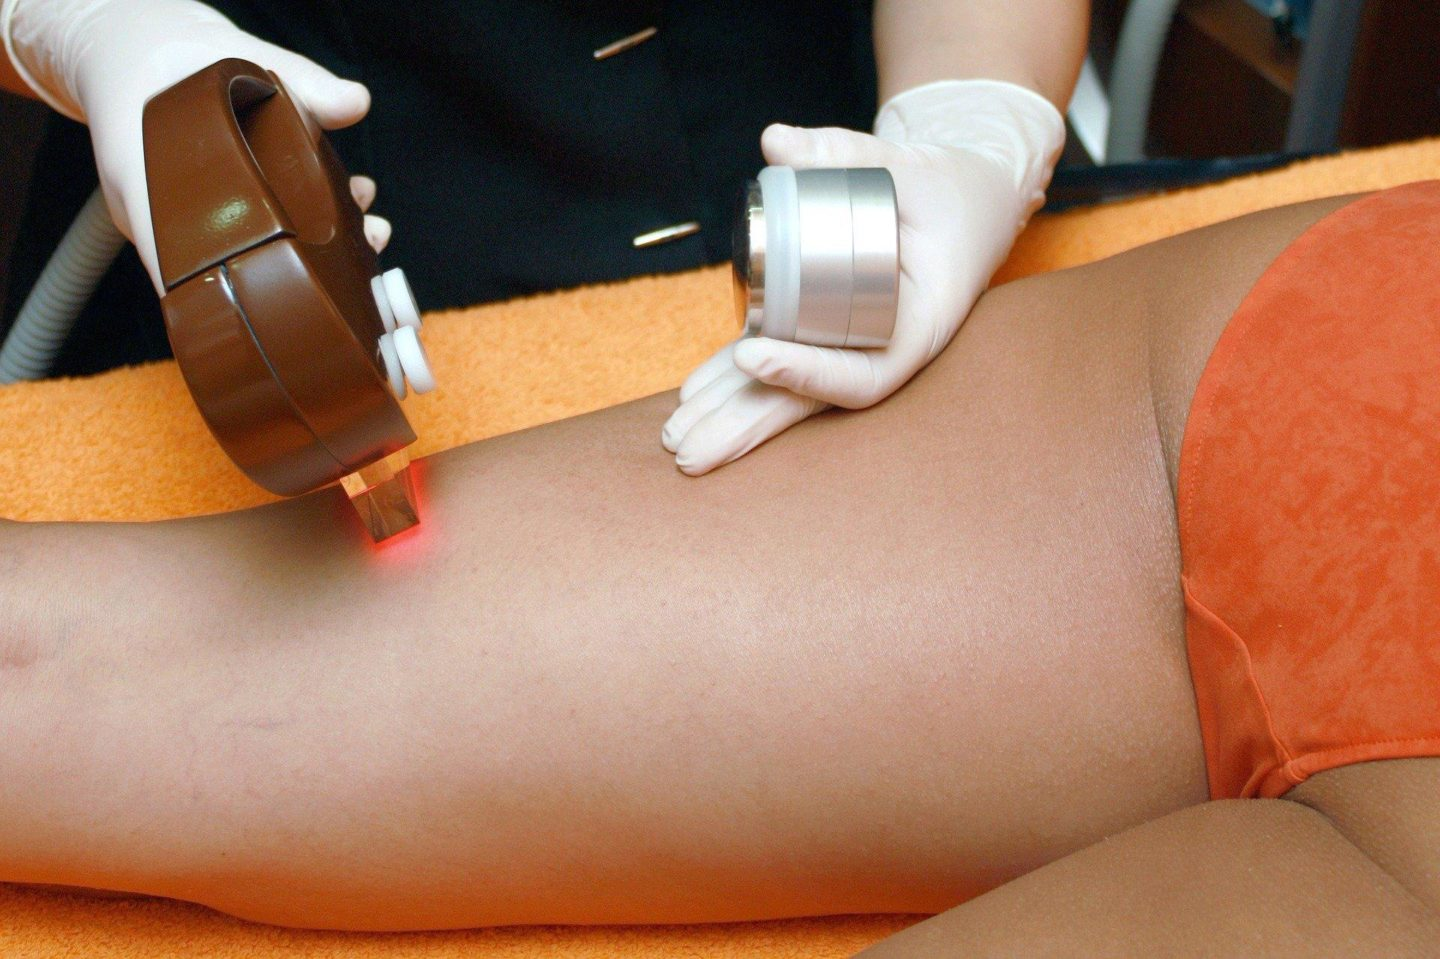 Six Key Things to Think About Before You Go for Laser Hair Removal - Rachel Nicole UK Blogger